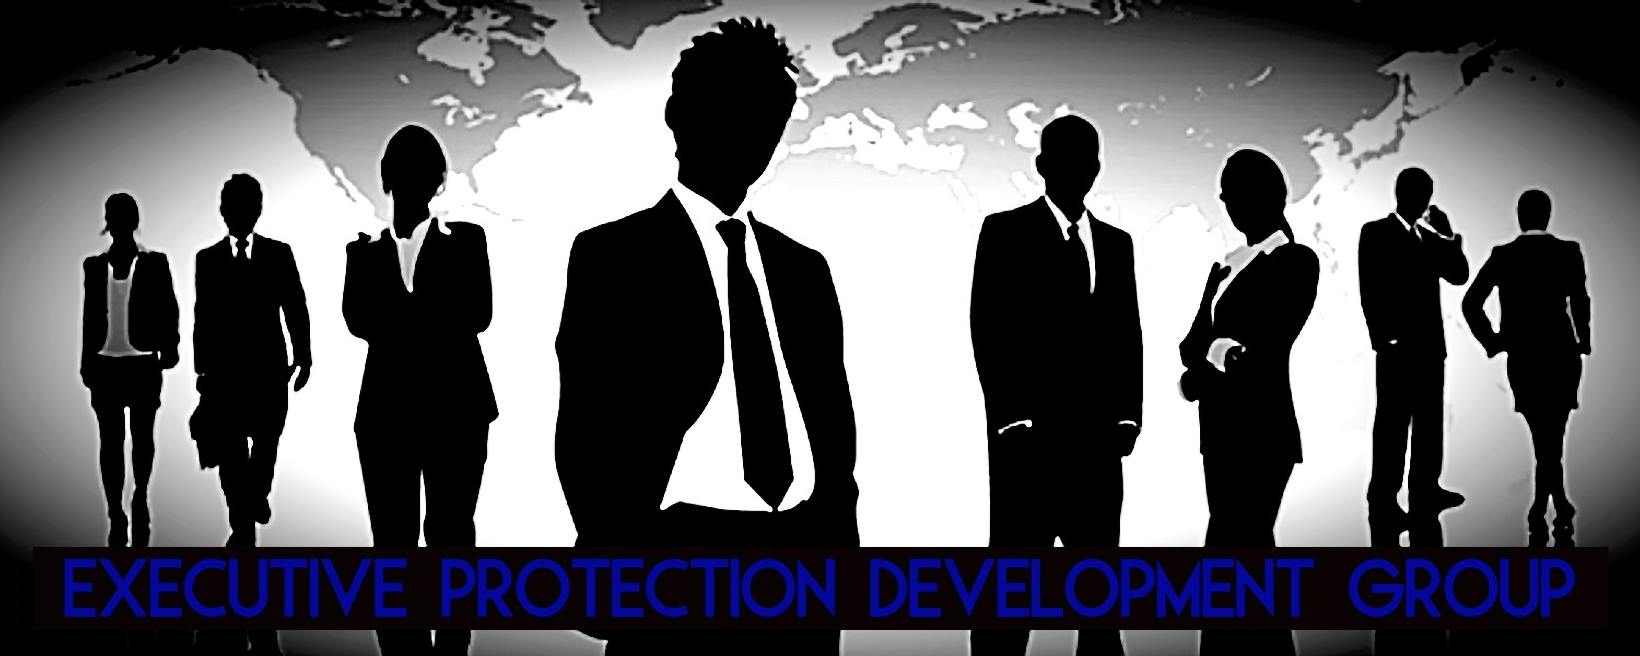 The ISA Training Division Joins with the Executive Protection Leadership and Development Group